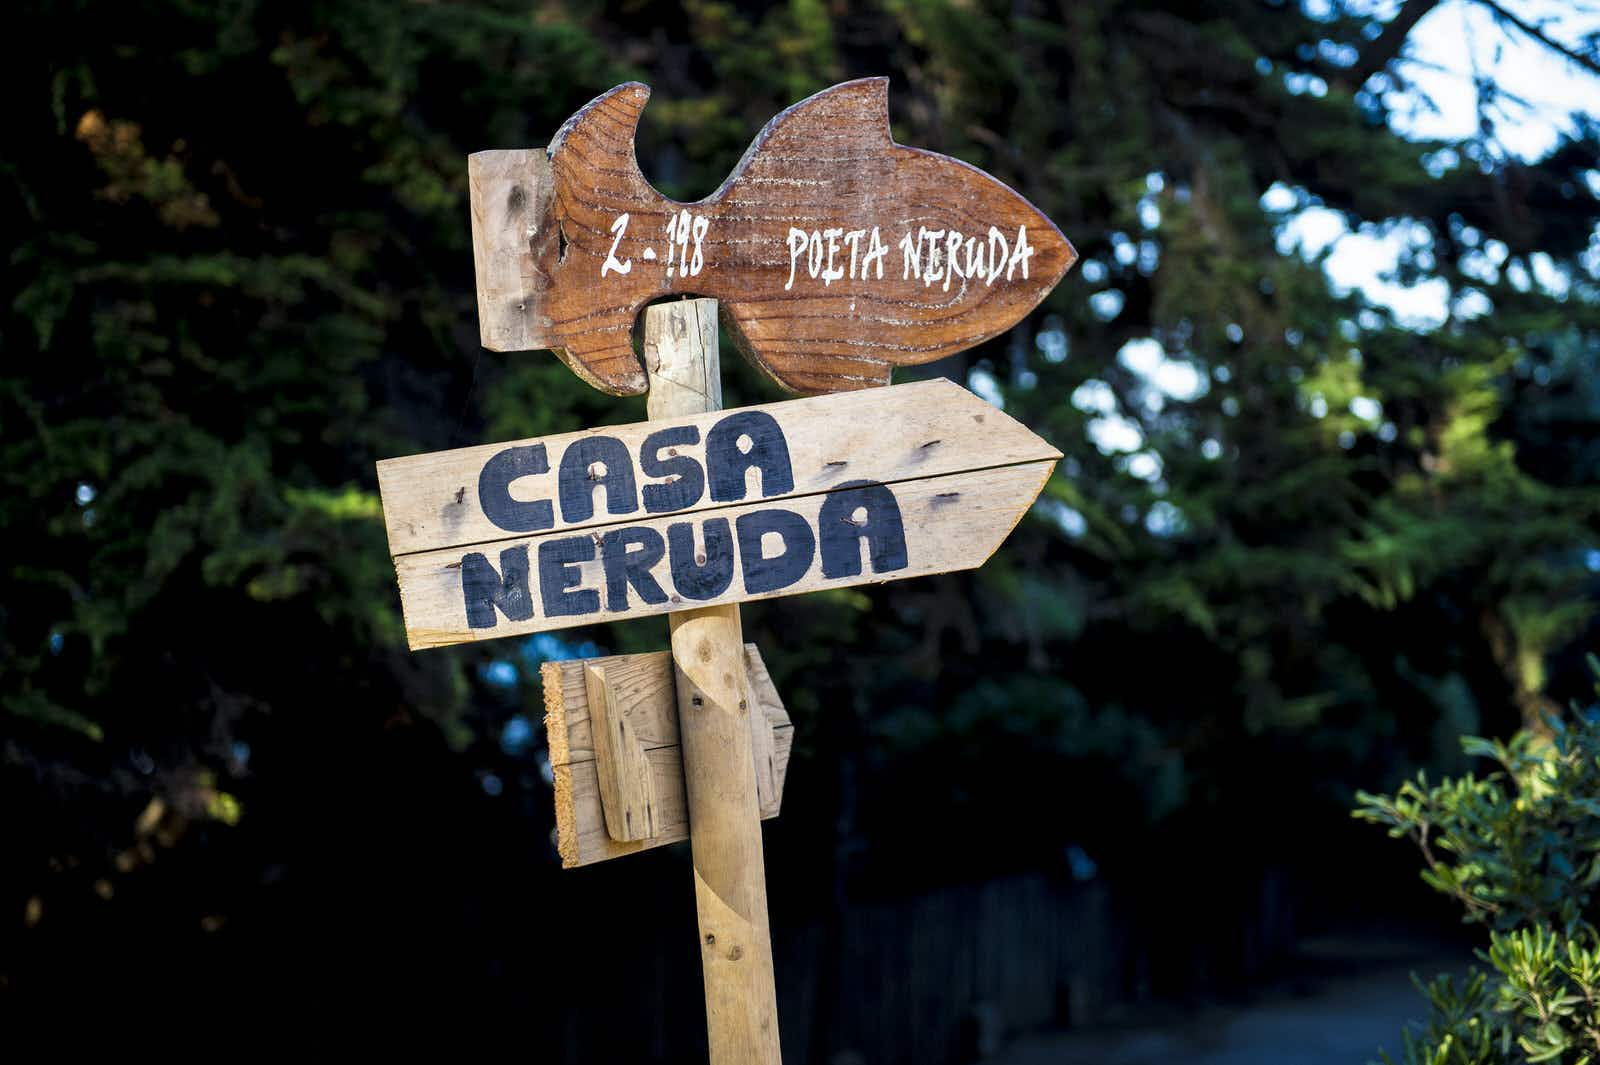 Soul searching: exploring central Chile through the homes of Pablo Neruda